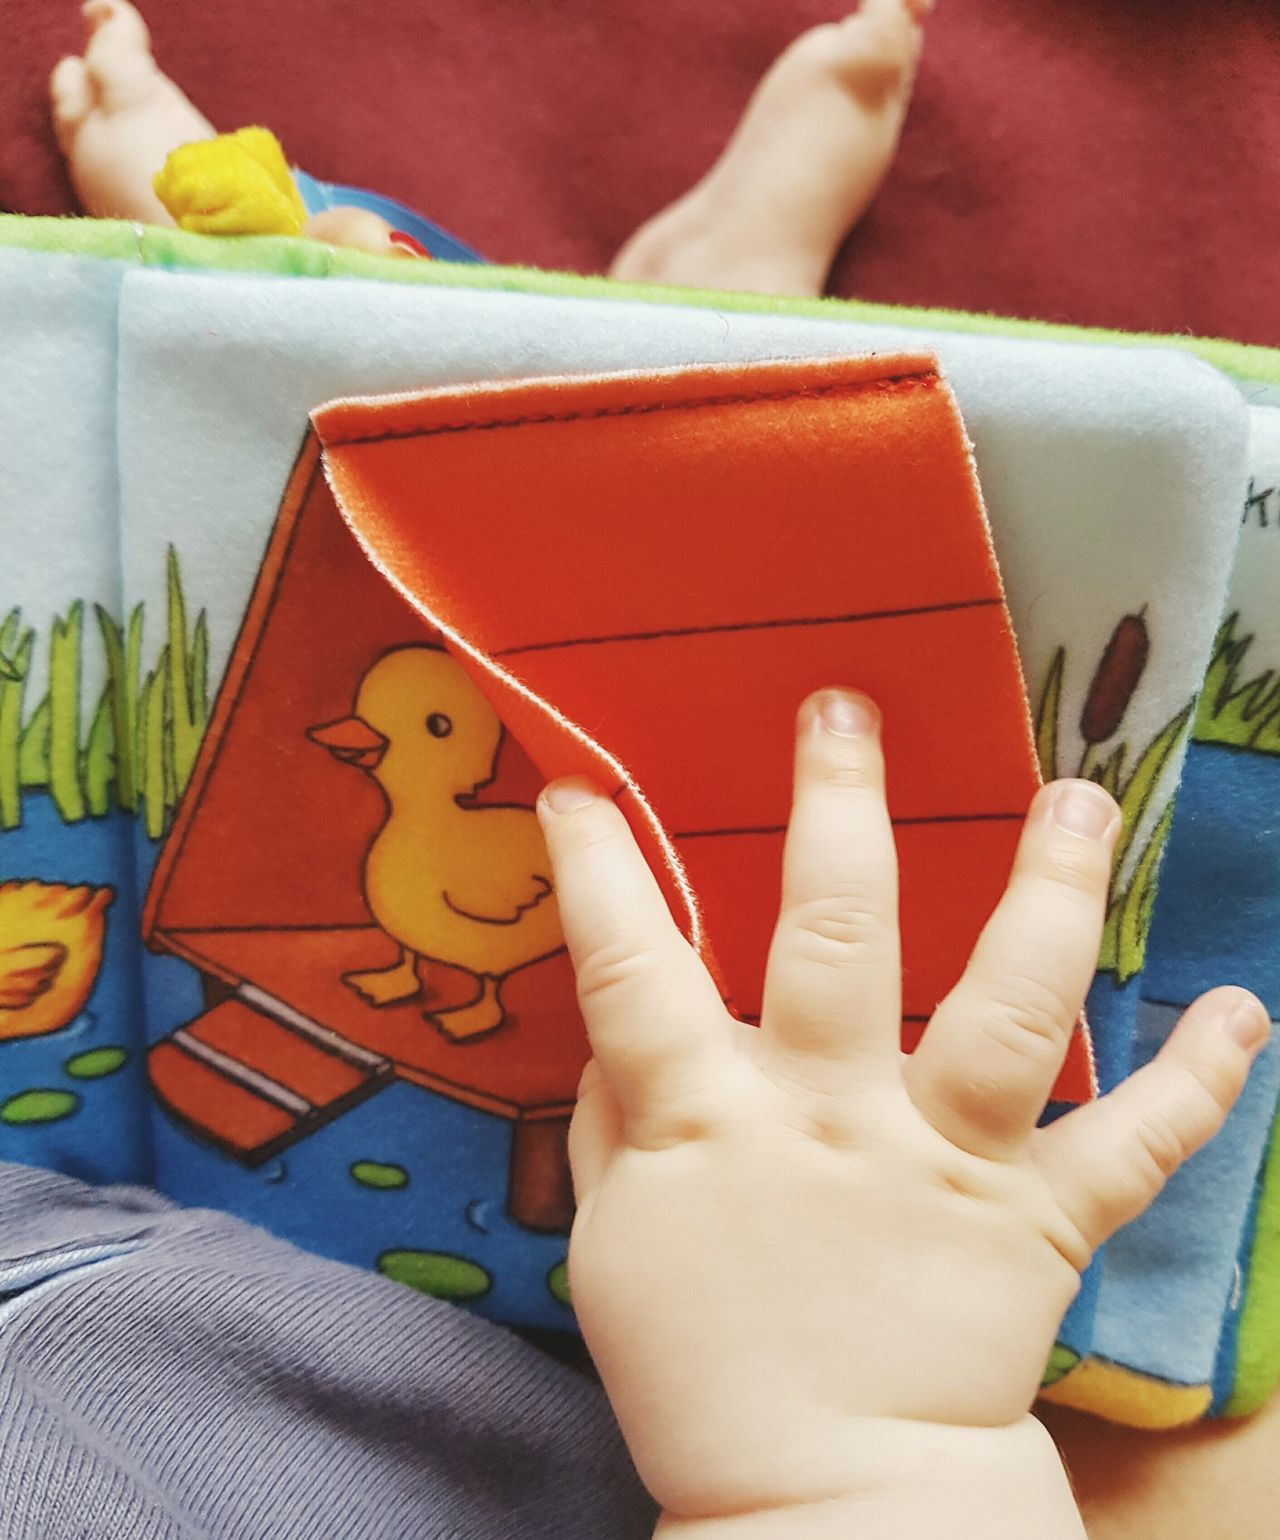 Curiosity Cropped Babyhands Hands Holding Book Where's The Duck Looking For Something Childrensbooks Picture Book Pages Colors Duck Baby Sitting Toddler  Curiosity Exploring Read A Book Learning Growing Up Babyfingers Discovering At Home Illustration Little Duck Showcase June